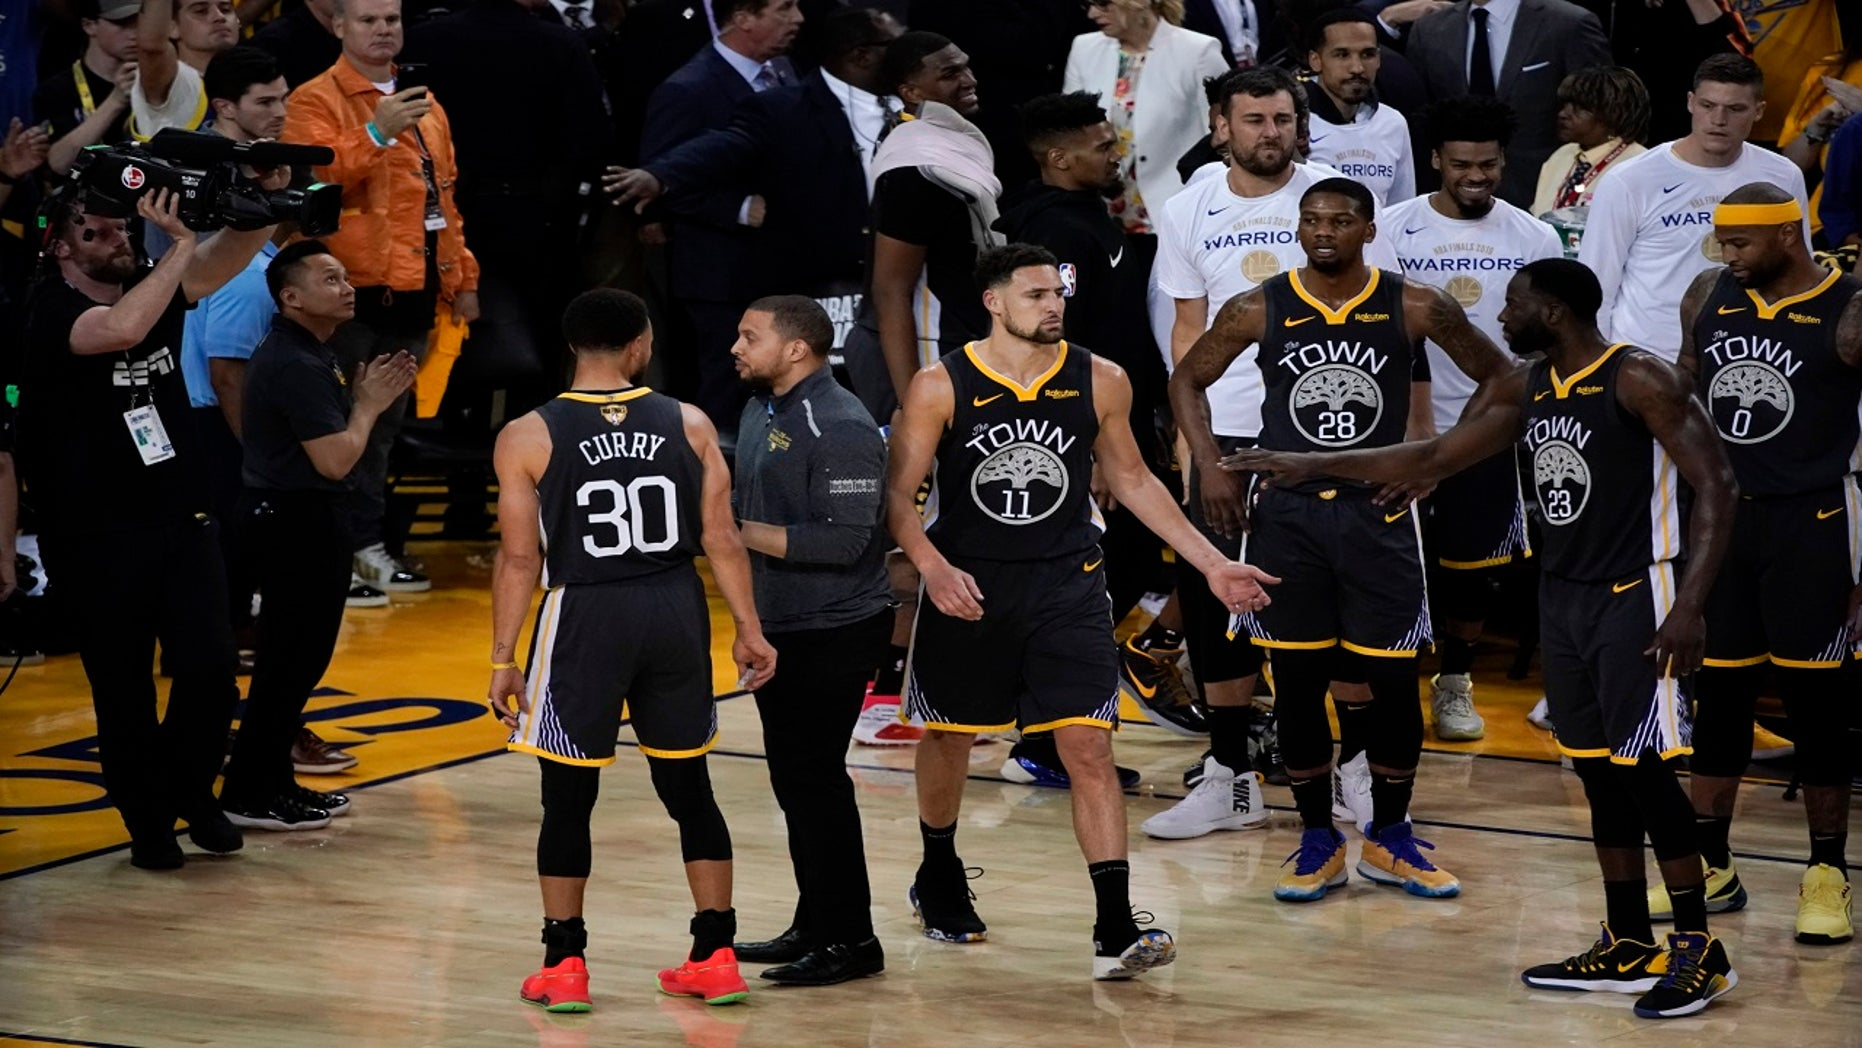 Golden State Warriors guard Klay Thompson (11) is greeted by teammates after walking back onto the court to shoot free throws after an injury against the Toronto Raptors during the second half of Game 6.